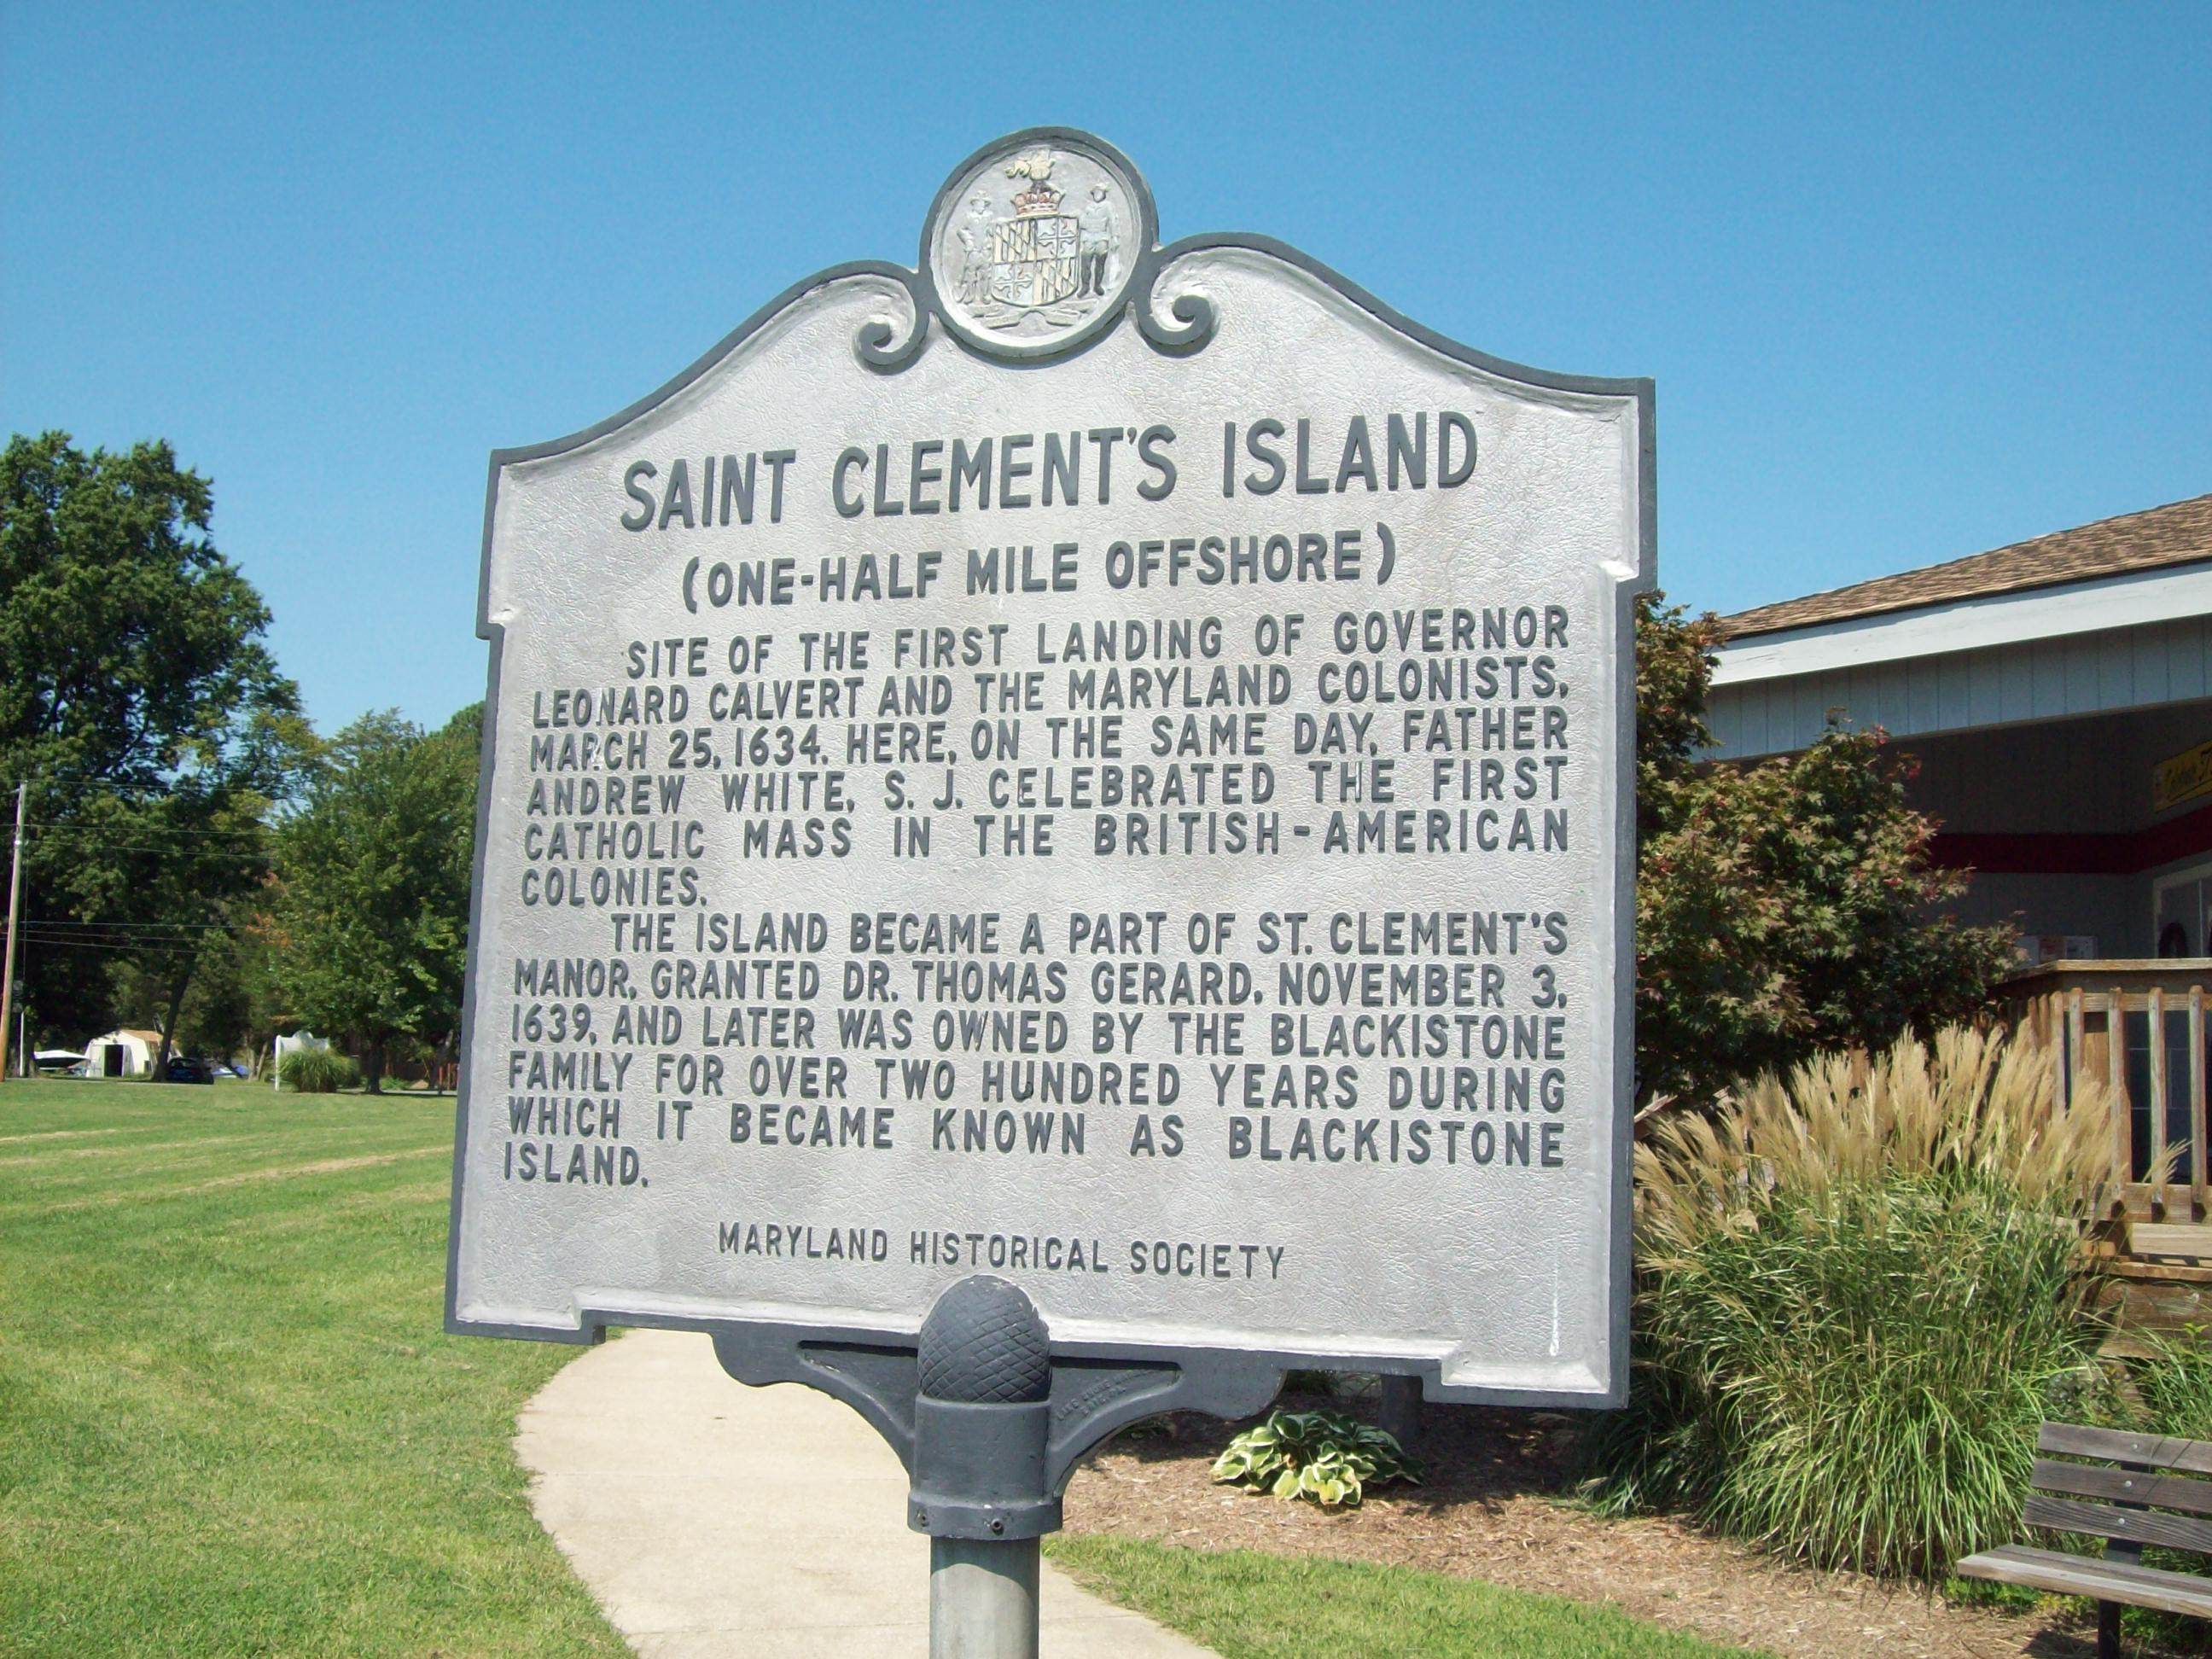 St. Clement's Island Historic Marker at Coltons Point, Maryland, which was added to the National Register of Historic Places on April 10, 1972. are located a small historical museum, a lighthouse, a post office, and a Catholic devotional monument to the miraculous medal. Seasonal boat service at times carries visitors the short distance to the shrinking, uninhabited St. Clement's Island. Photo taken on September 5, 2009.